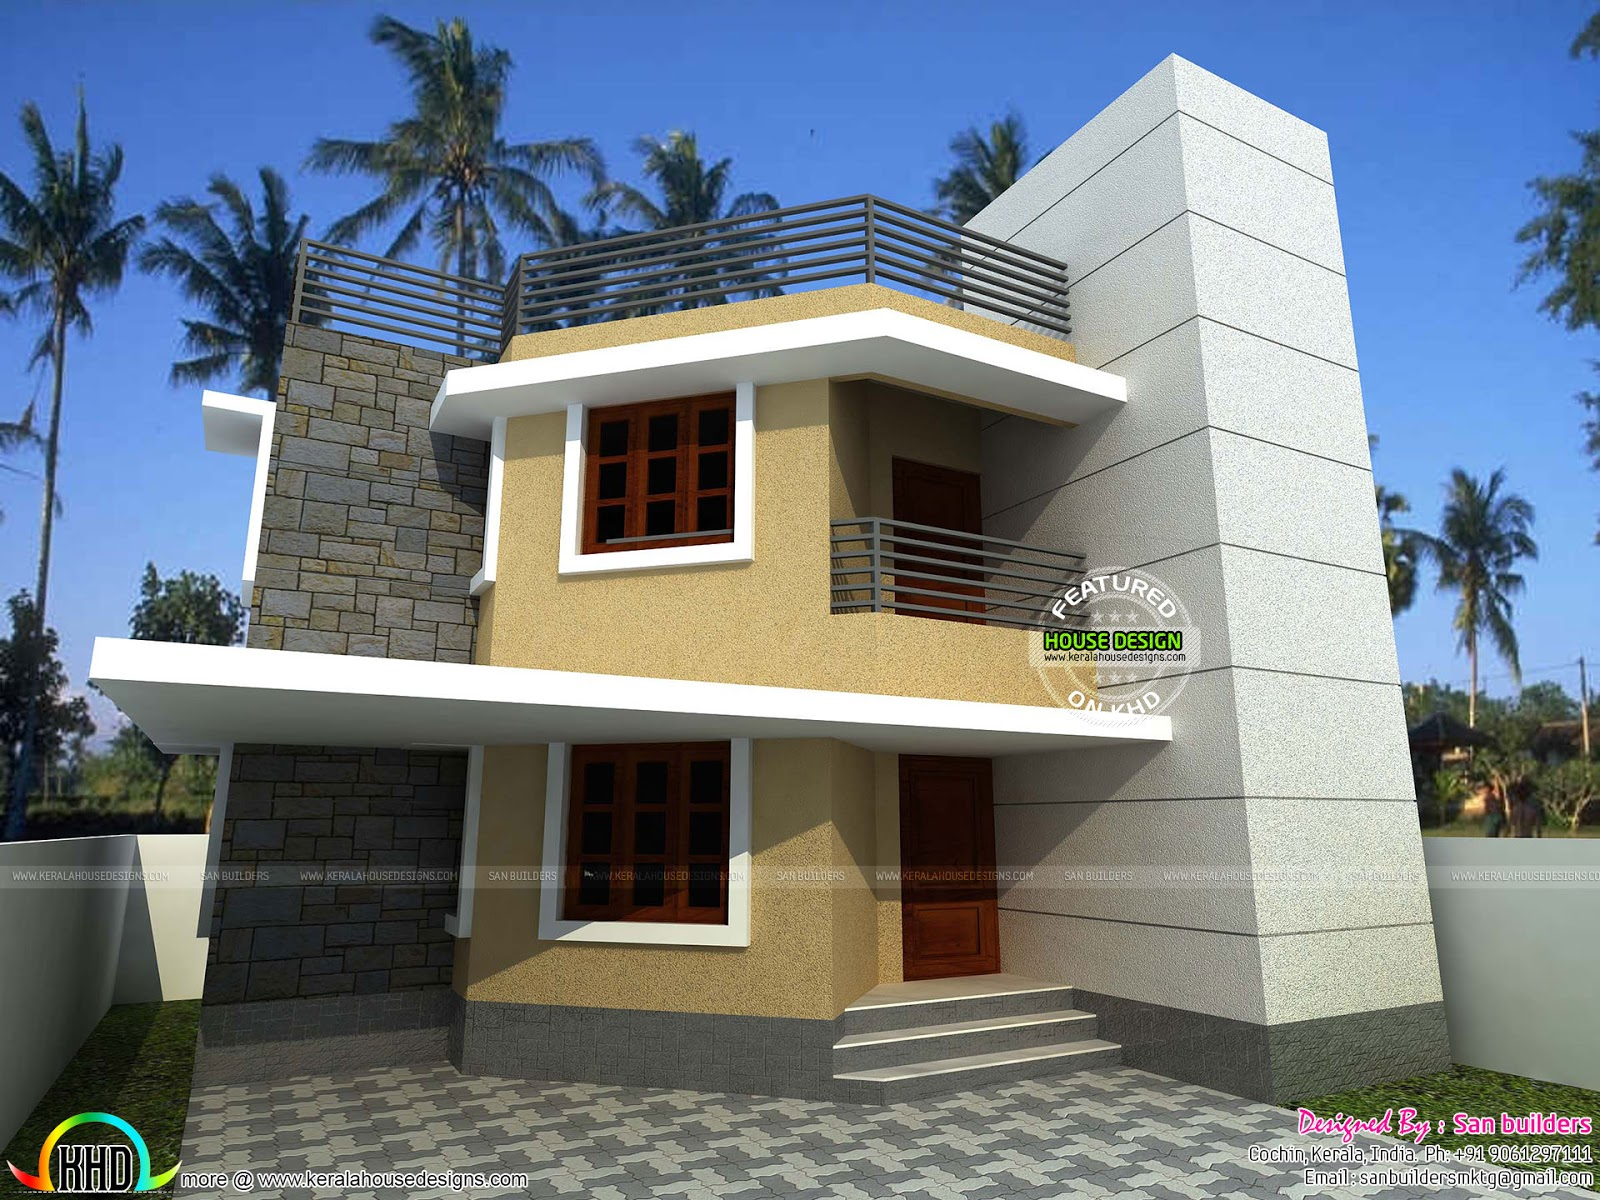 sq ft house cents kerala home design floor plans sq ft house provision stair future expansion home